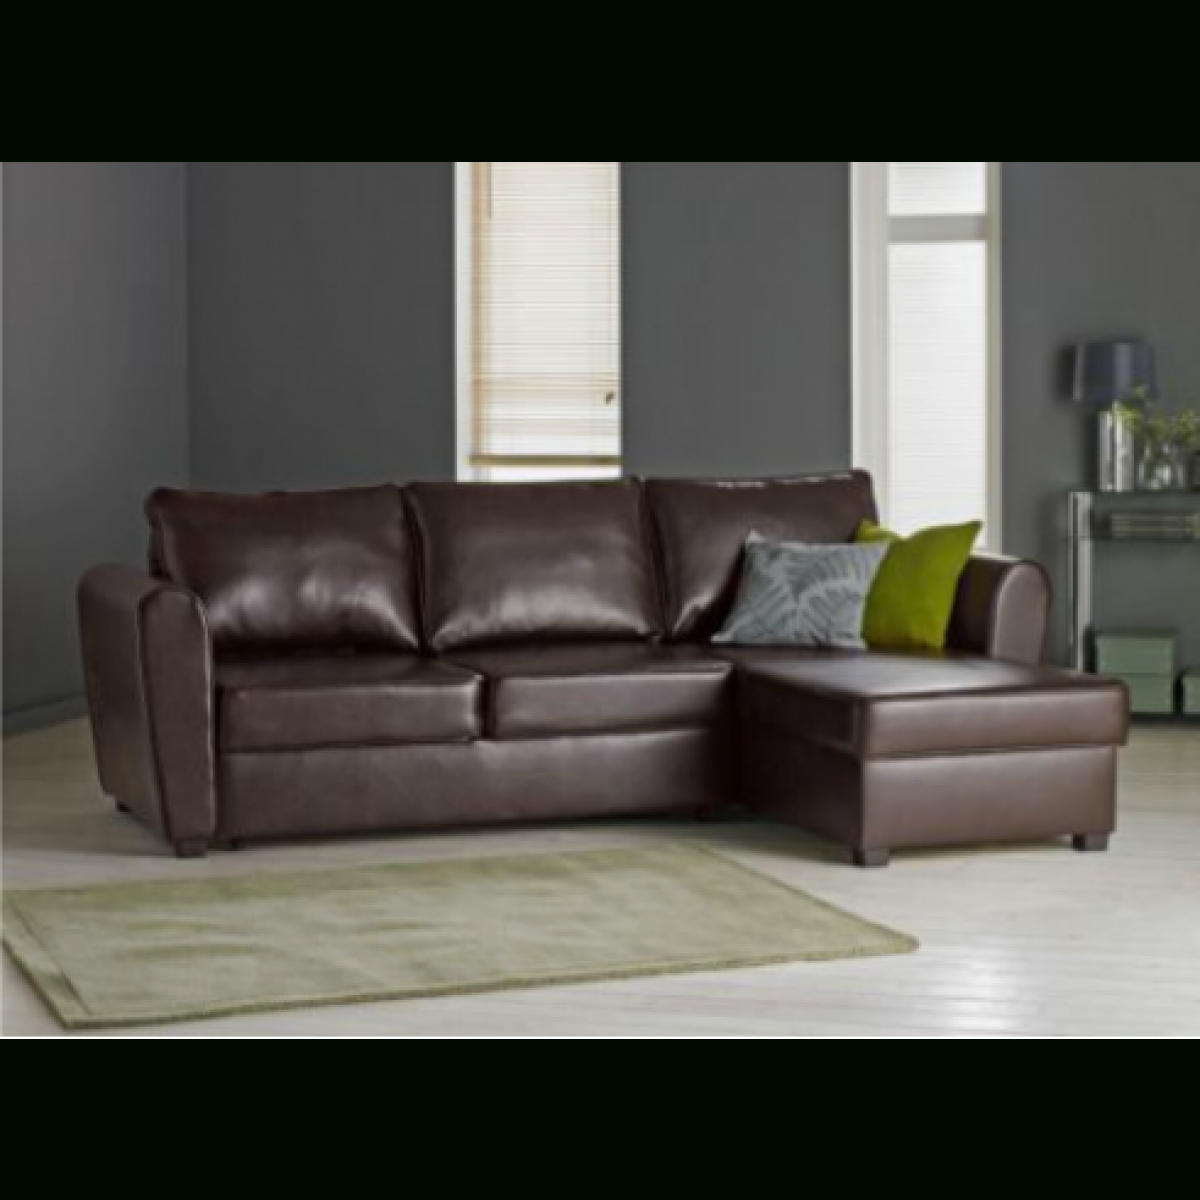 New Siena Fabric Corner Sofa Bed With Storage - Charcoal in Leather Sofa Beds With Storage (Image 19 of 30)